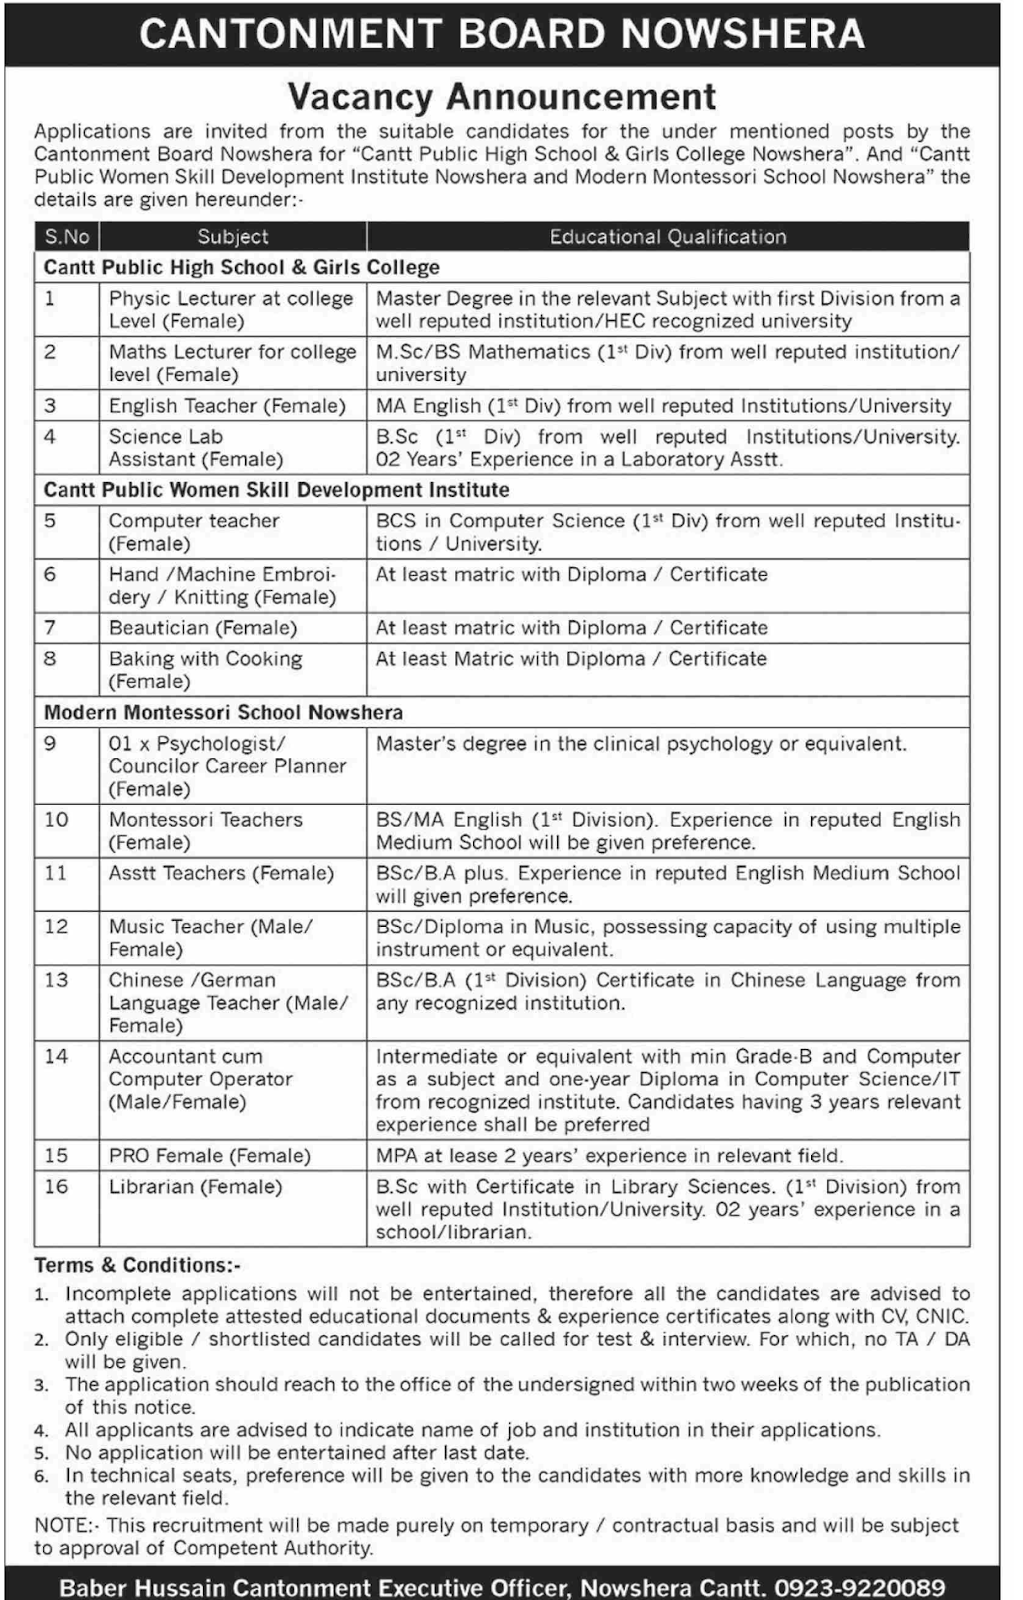 Jobs in Cantonment Board Nowshera Latest Advertisement 2020